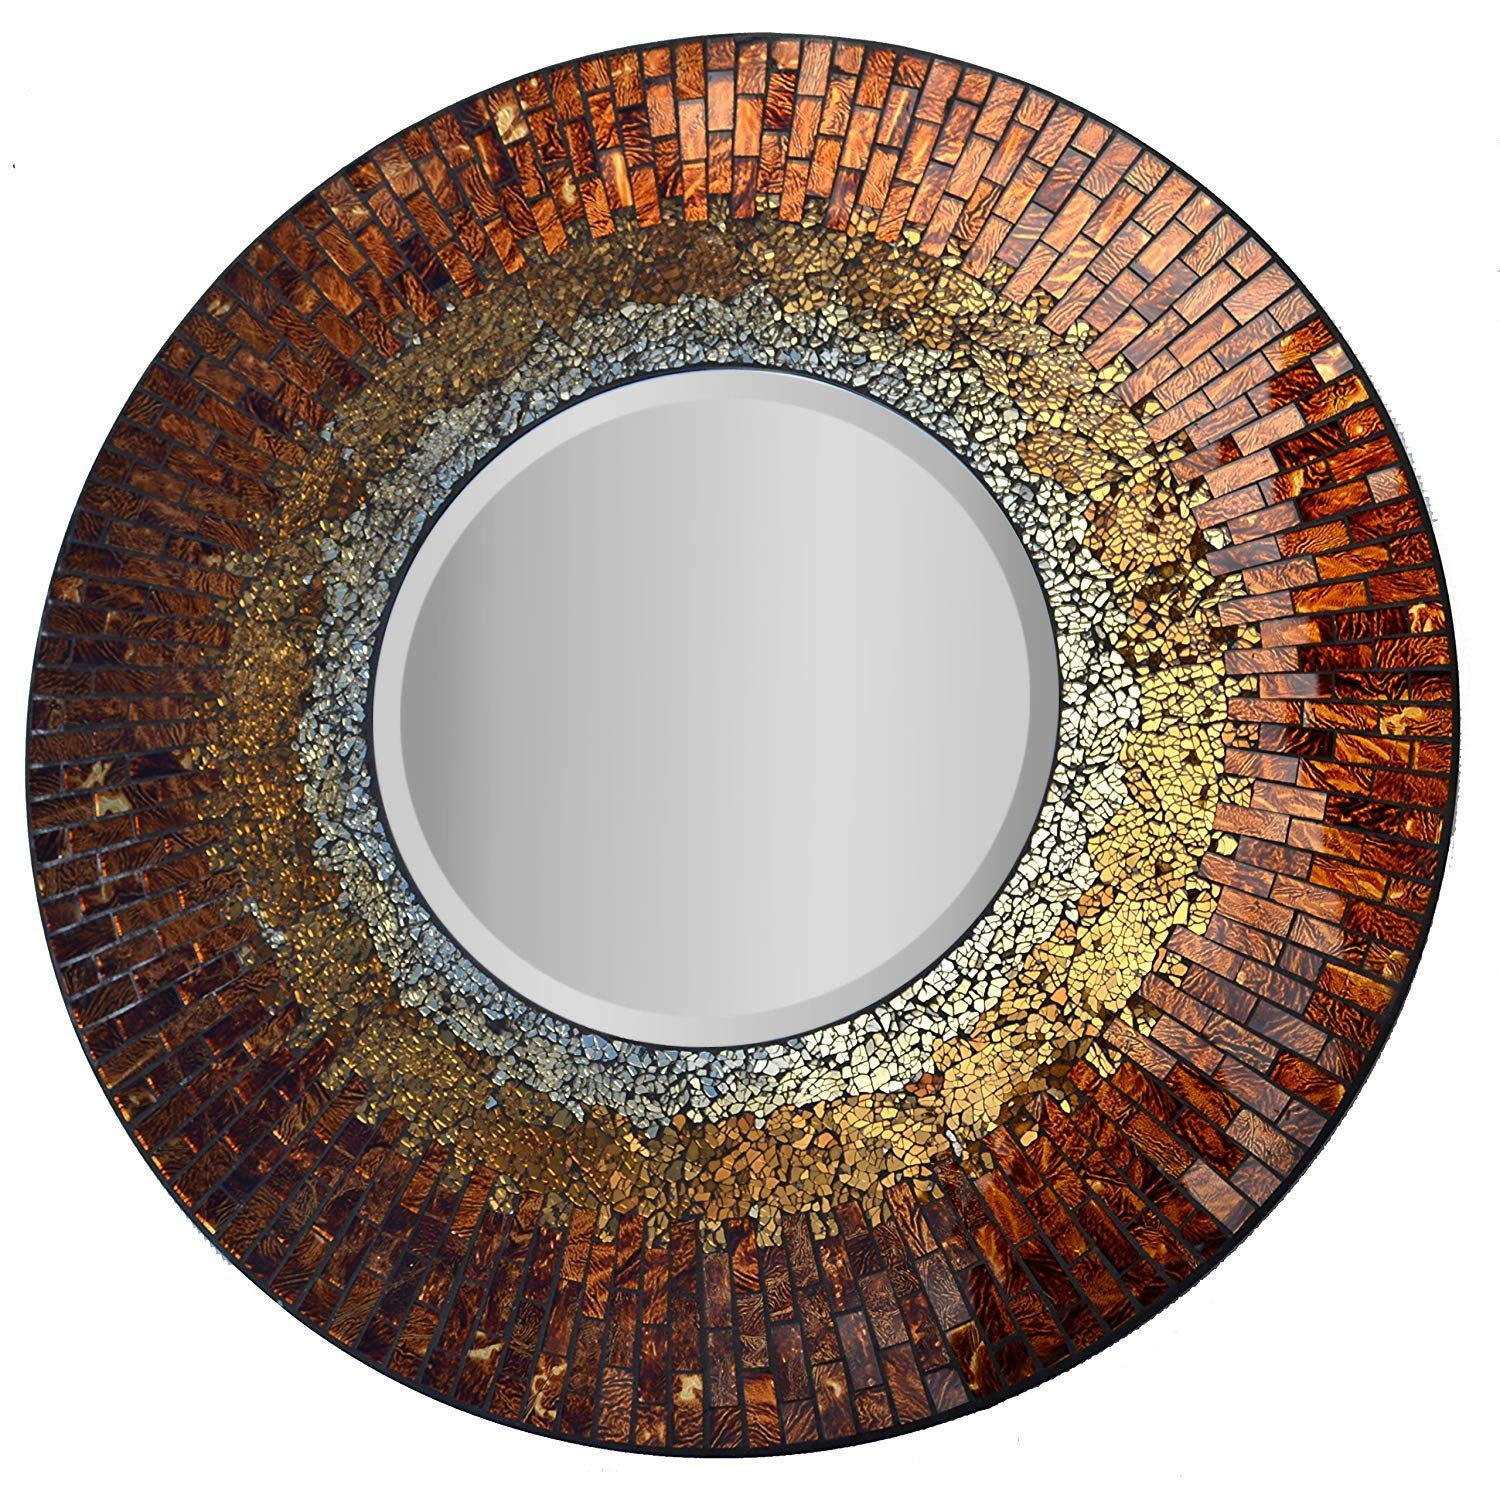 "Turning it up a notch with a matching mirror: The Lulu Decor, Baltic Amber Mosaic Wall Mirror. Is a decorative and handmade  My favorite of 9 Accessories For A Cozy Home Decor  - beveled round mirror.  Home Accessories For Cozy Home Decor It measures a diameter of 23.5"", that's 11.5"" for the mirror. And it is a perfect match to go with the wall clock above. (LP301) Price: $152.53 & FREE Shipping"